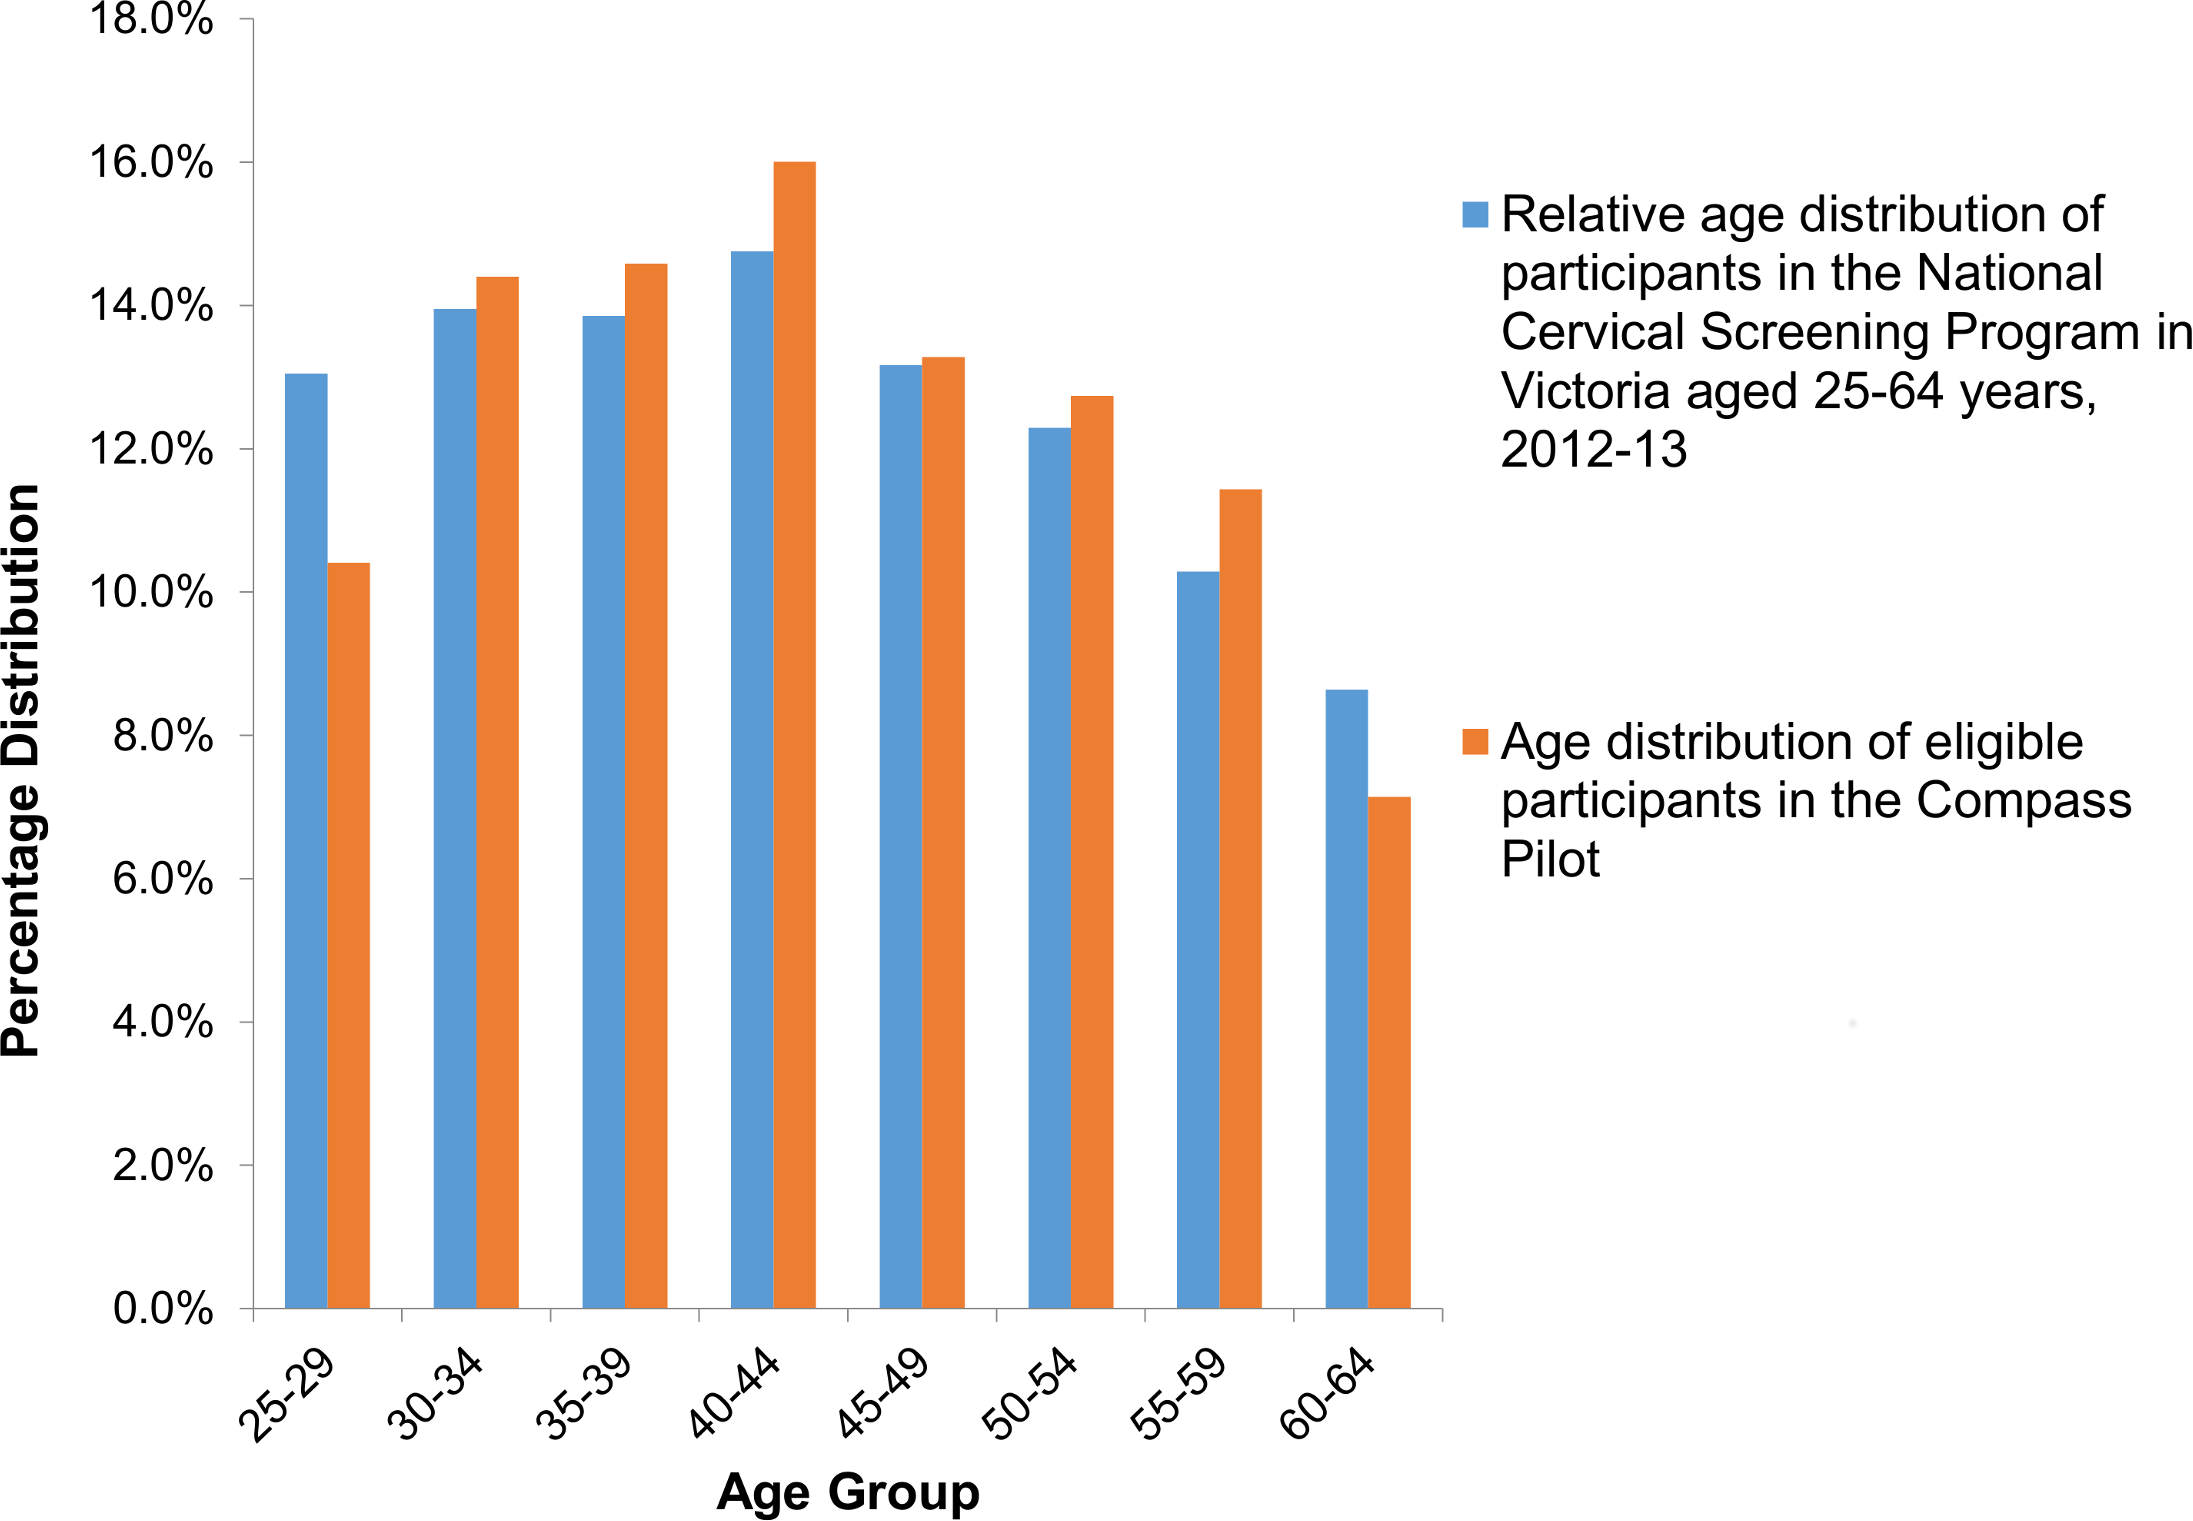 Participant age distribution, compared to those routinely attending cervical screening in Victoria.